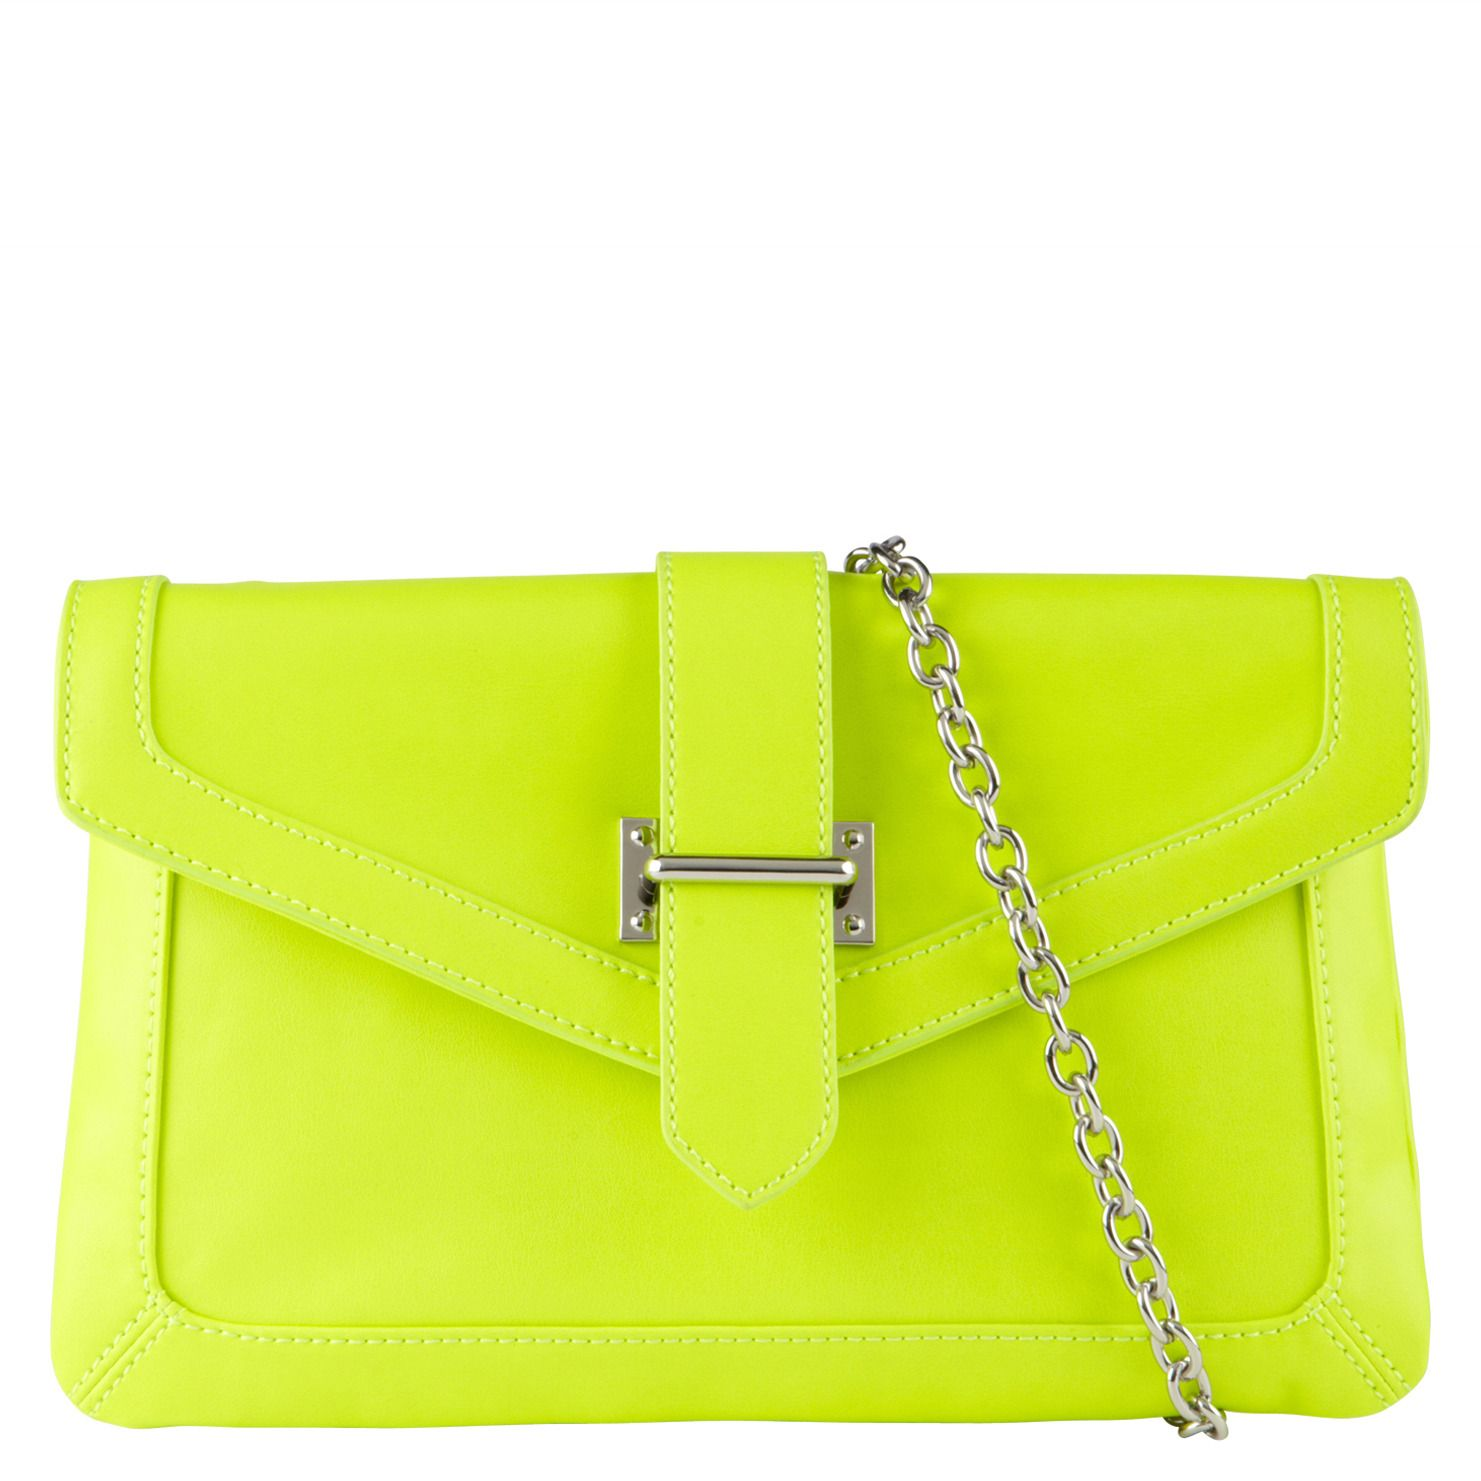 Aldo: Hord in Peach Yellow.  I'm loving the acid green clutch with crisp sleek lines balanced with a chain strap.